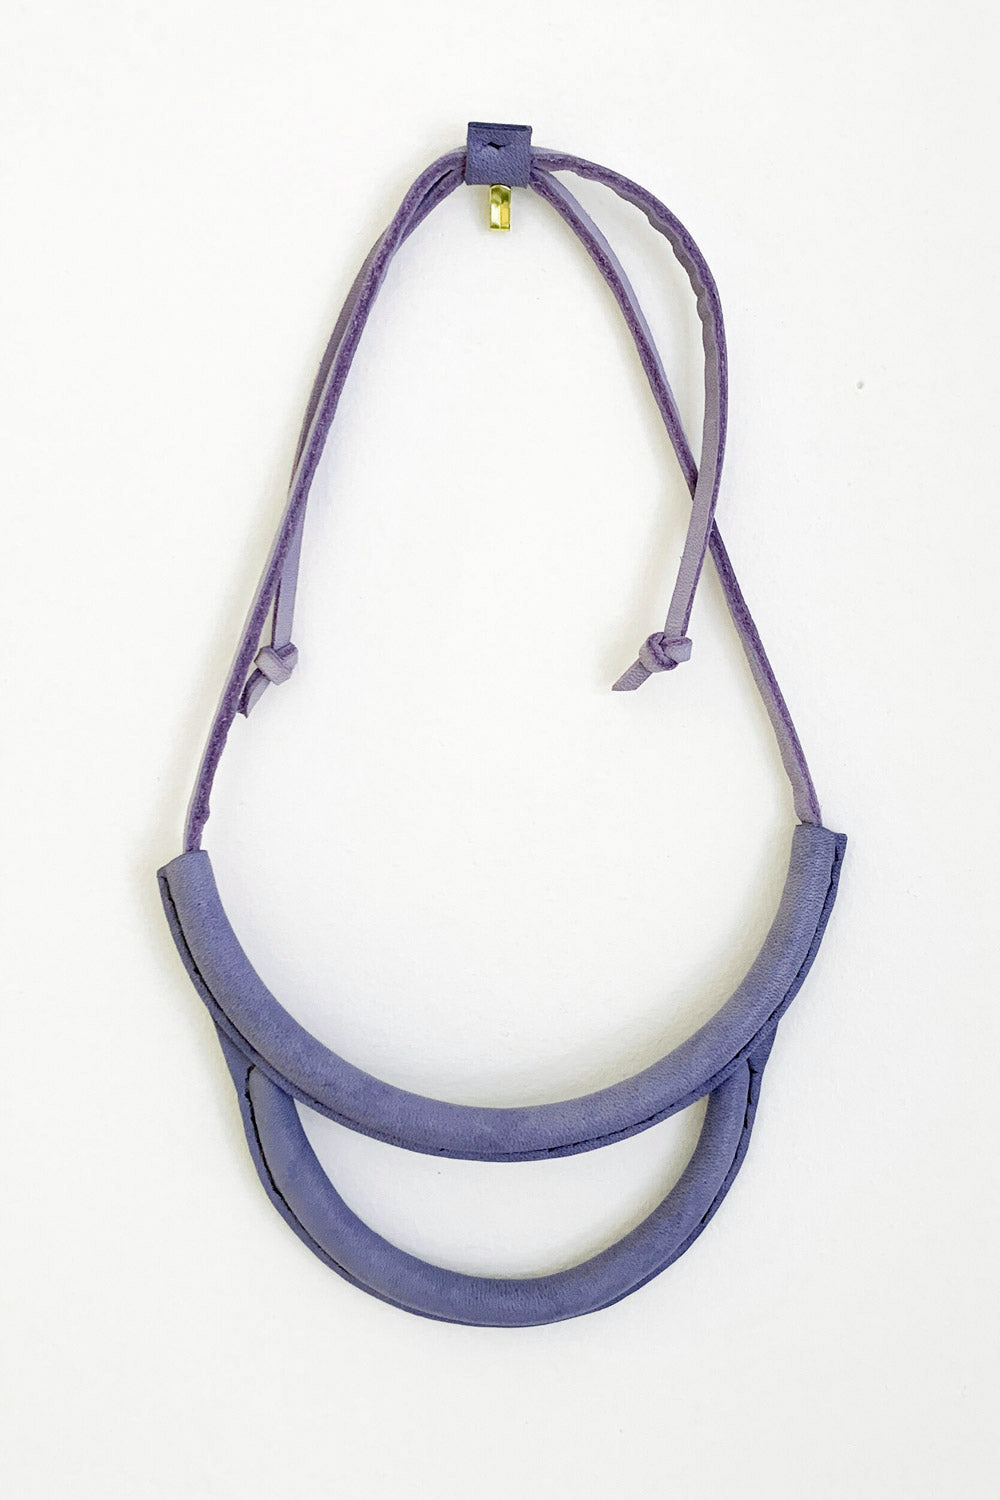 Arc Necklace in Lavendar